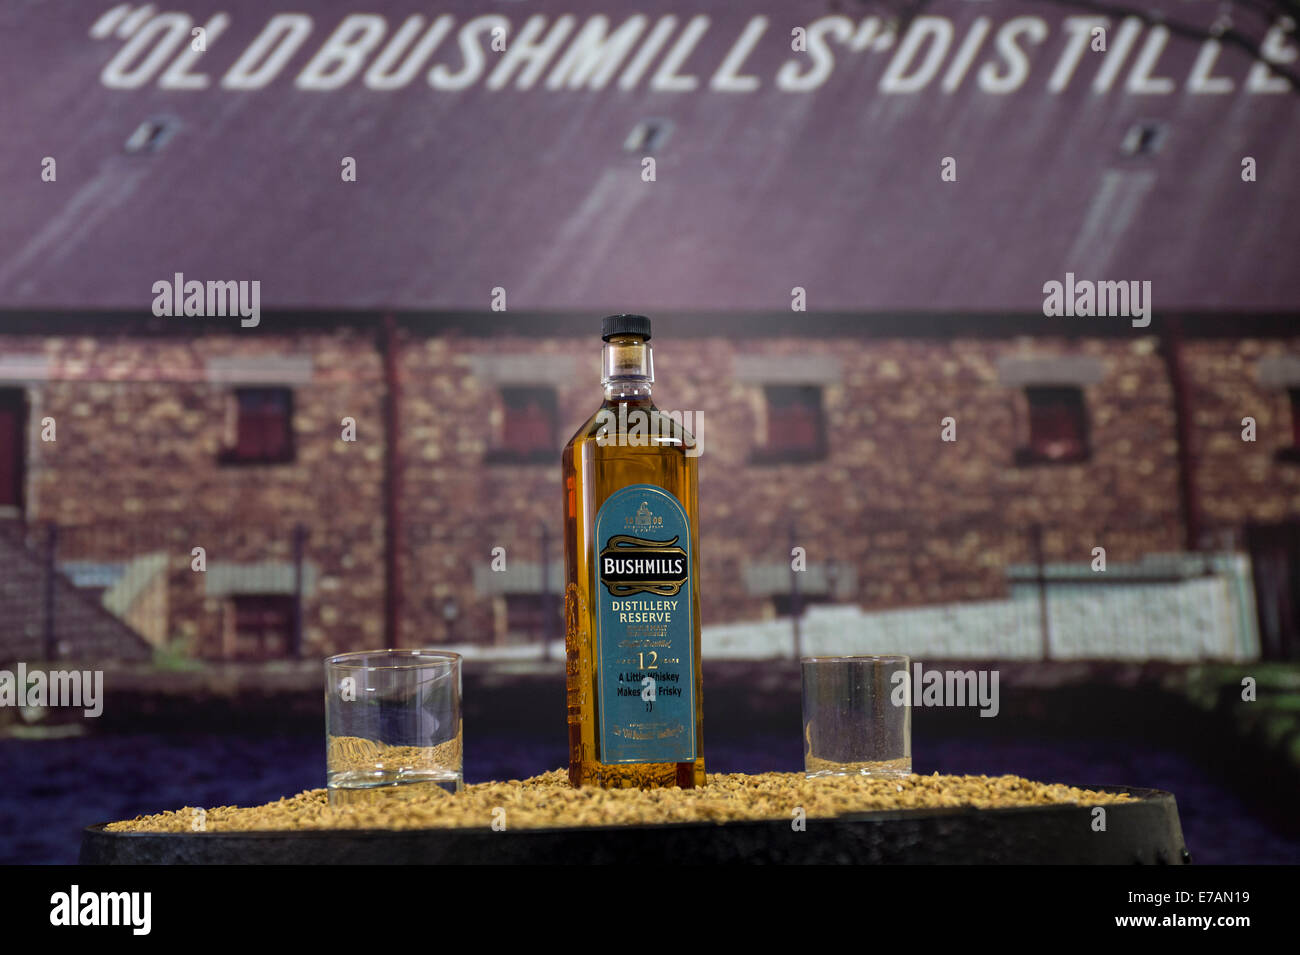 12 year old Bushmills single malt Distillery Reserve whiskey. - Stock Image